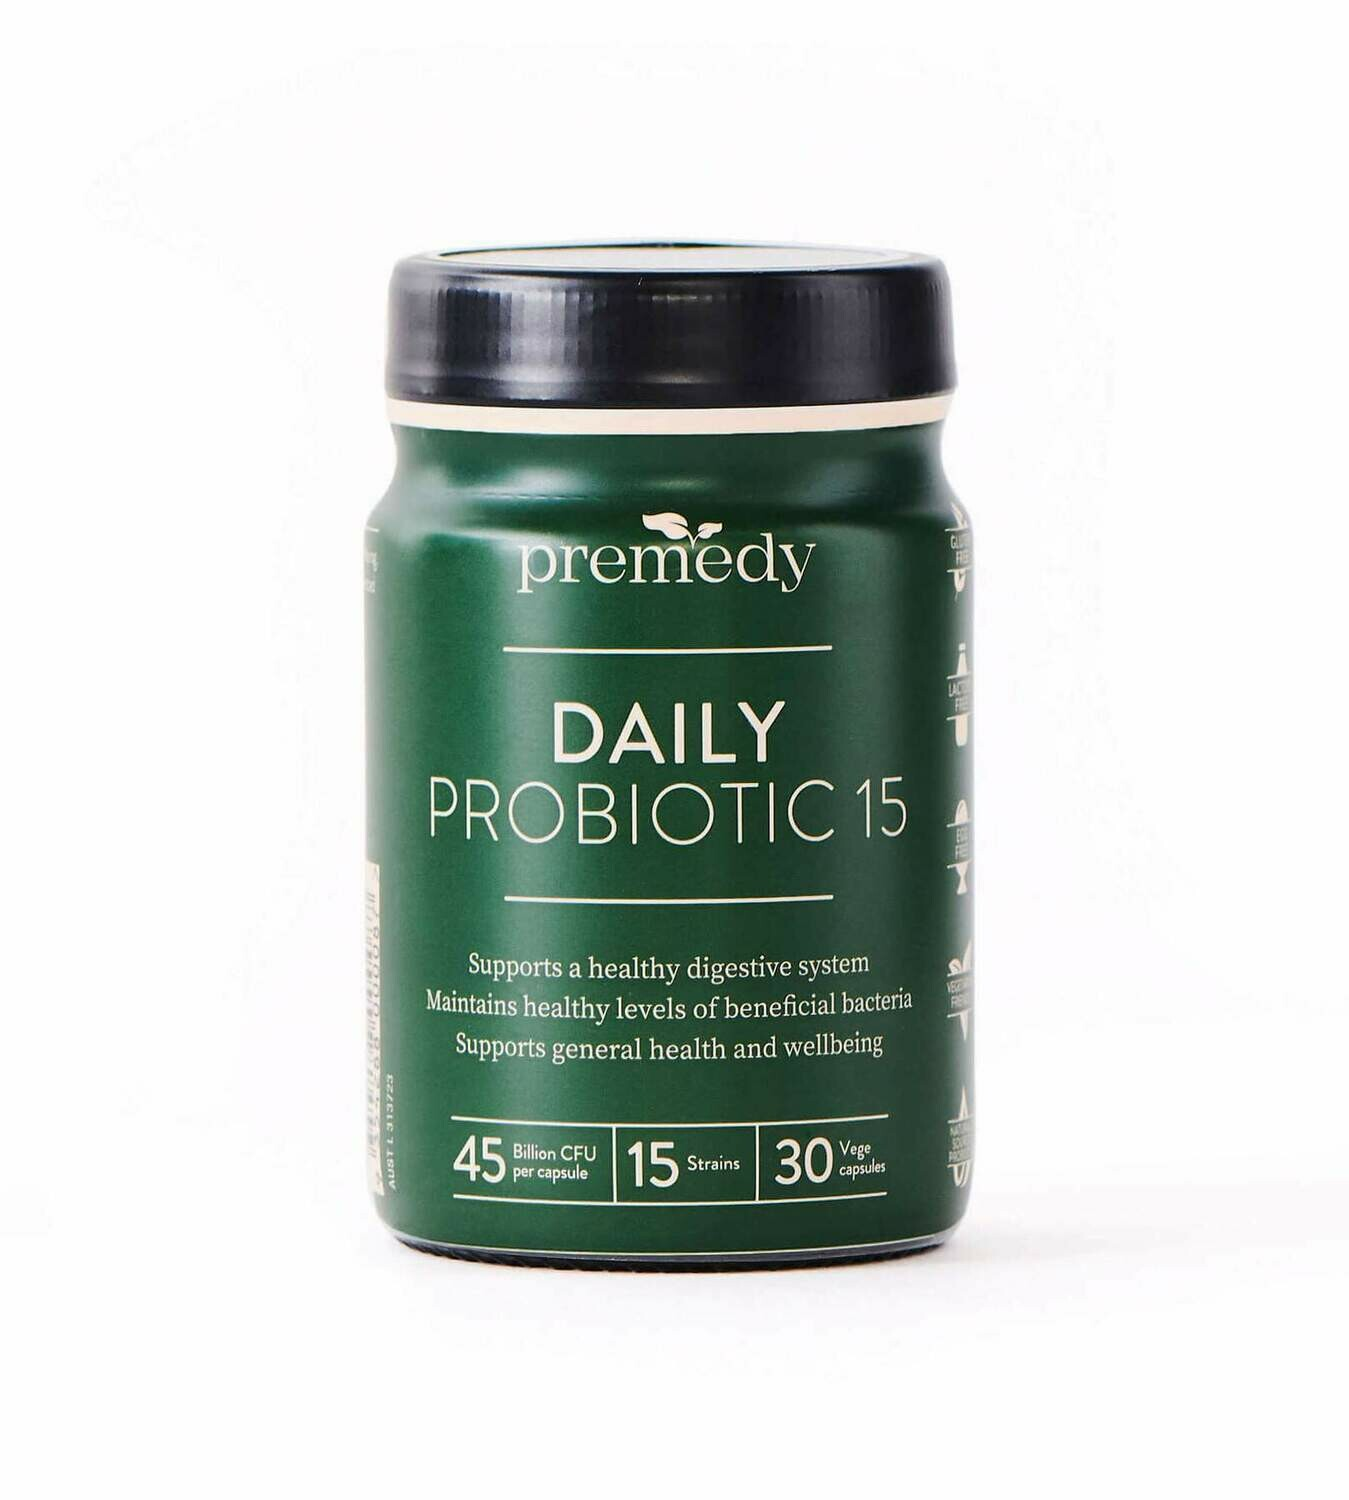 Premedy Daily Probiotic 15 for Adults